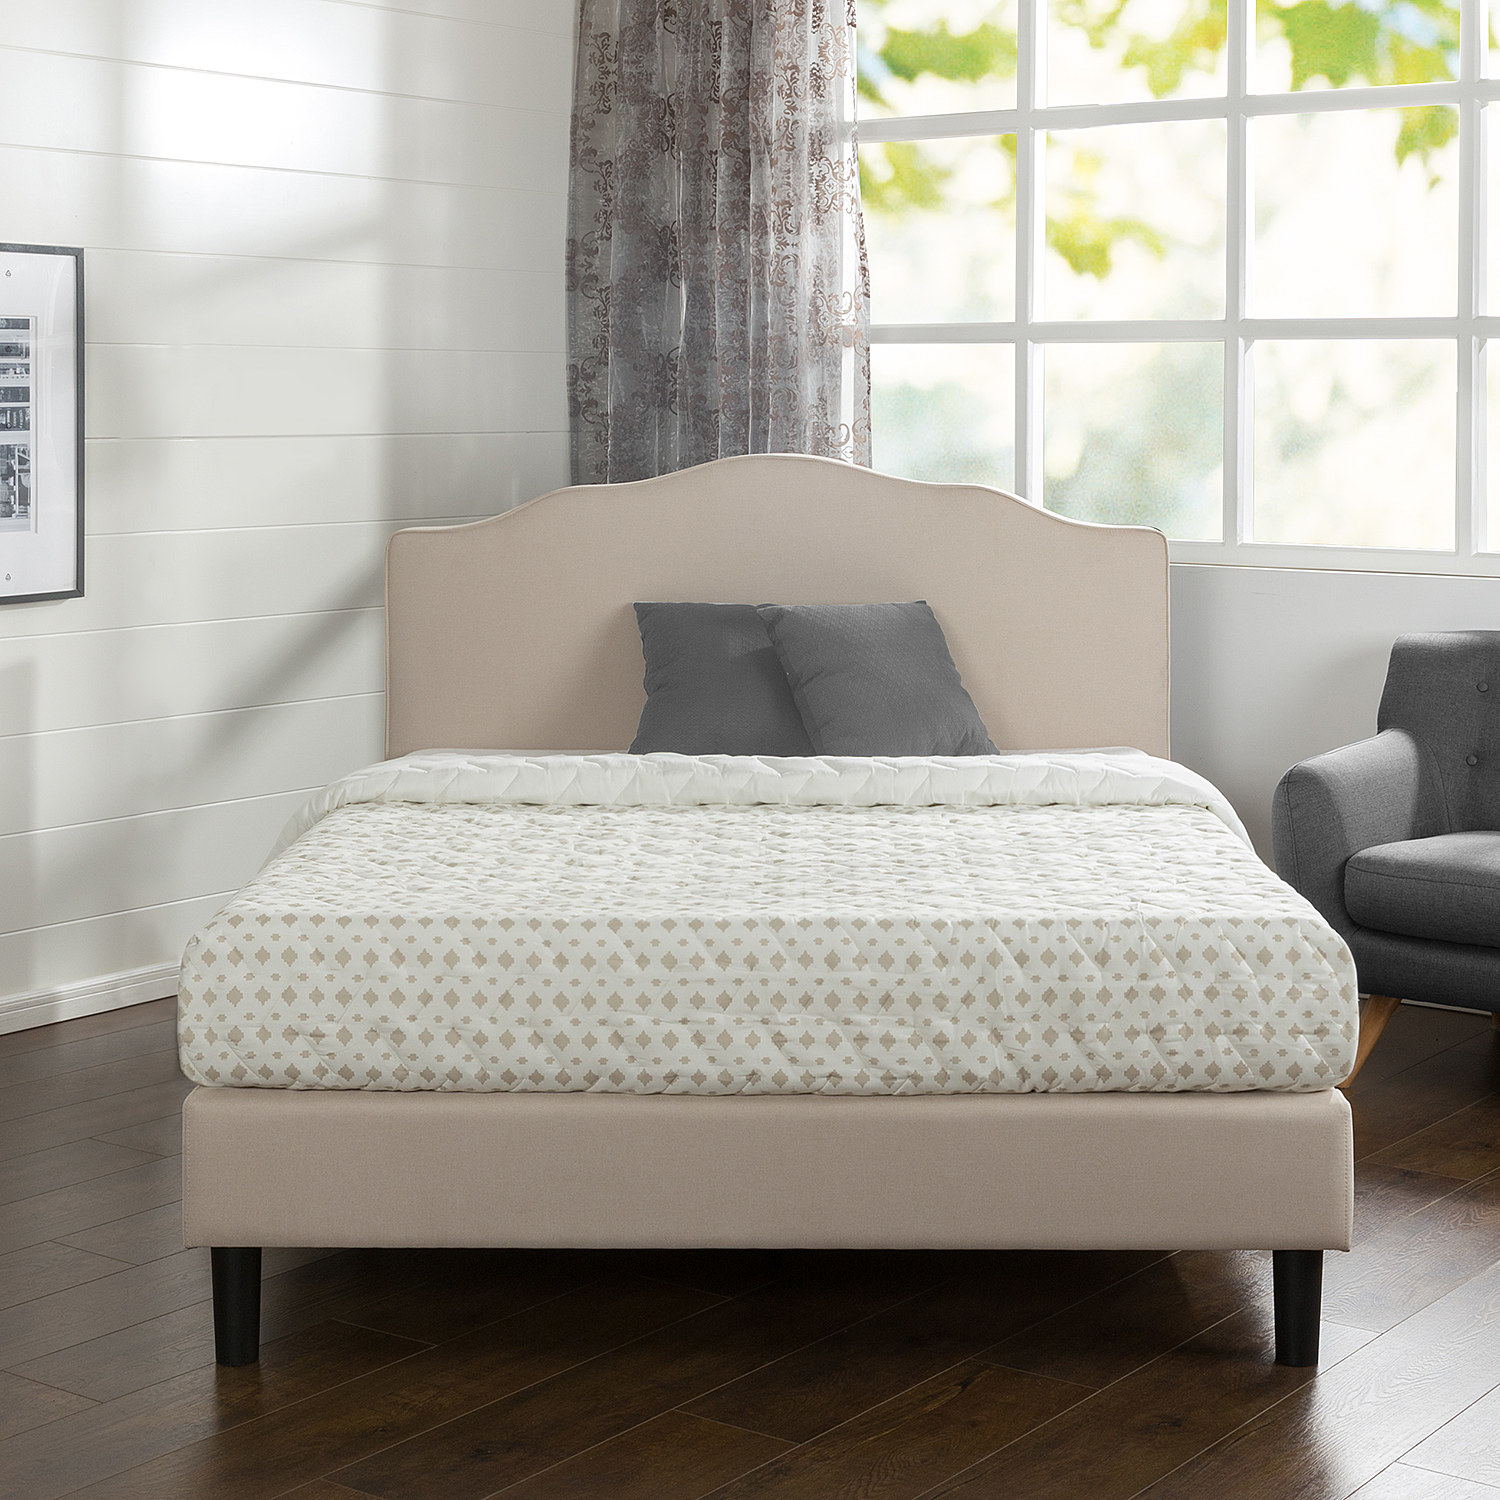 A cream-colored bed frame with headboard and brown wooden legs